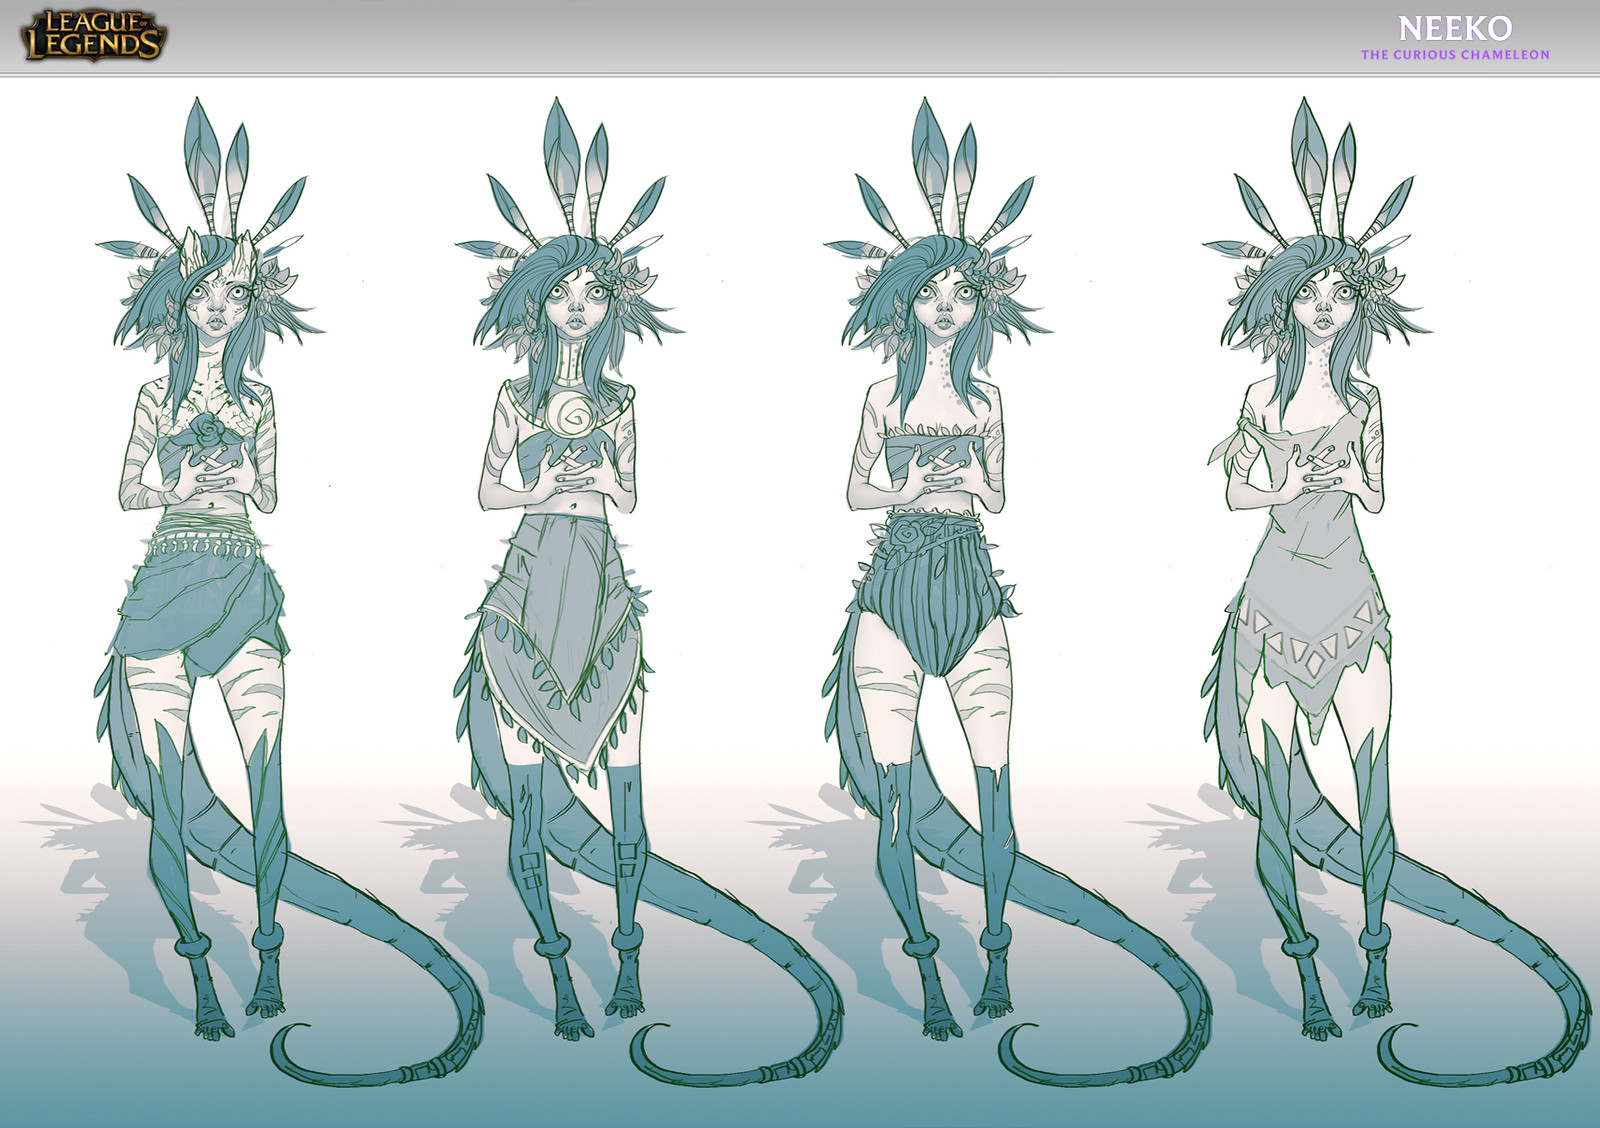 Some variations on the outfits and the creature balance.